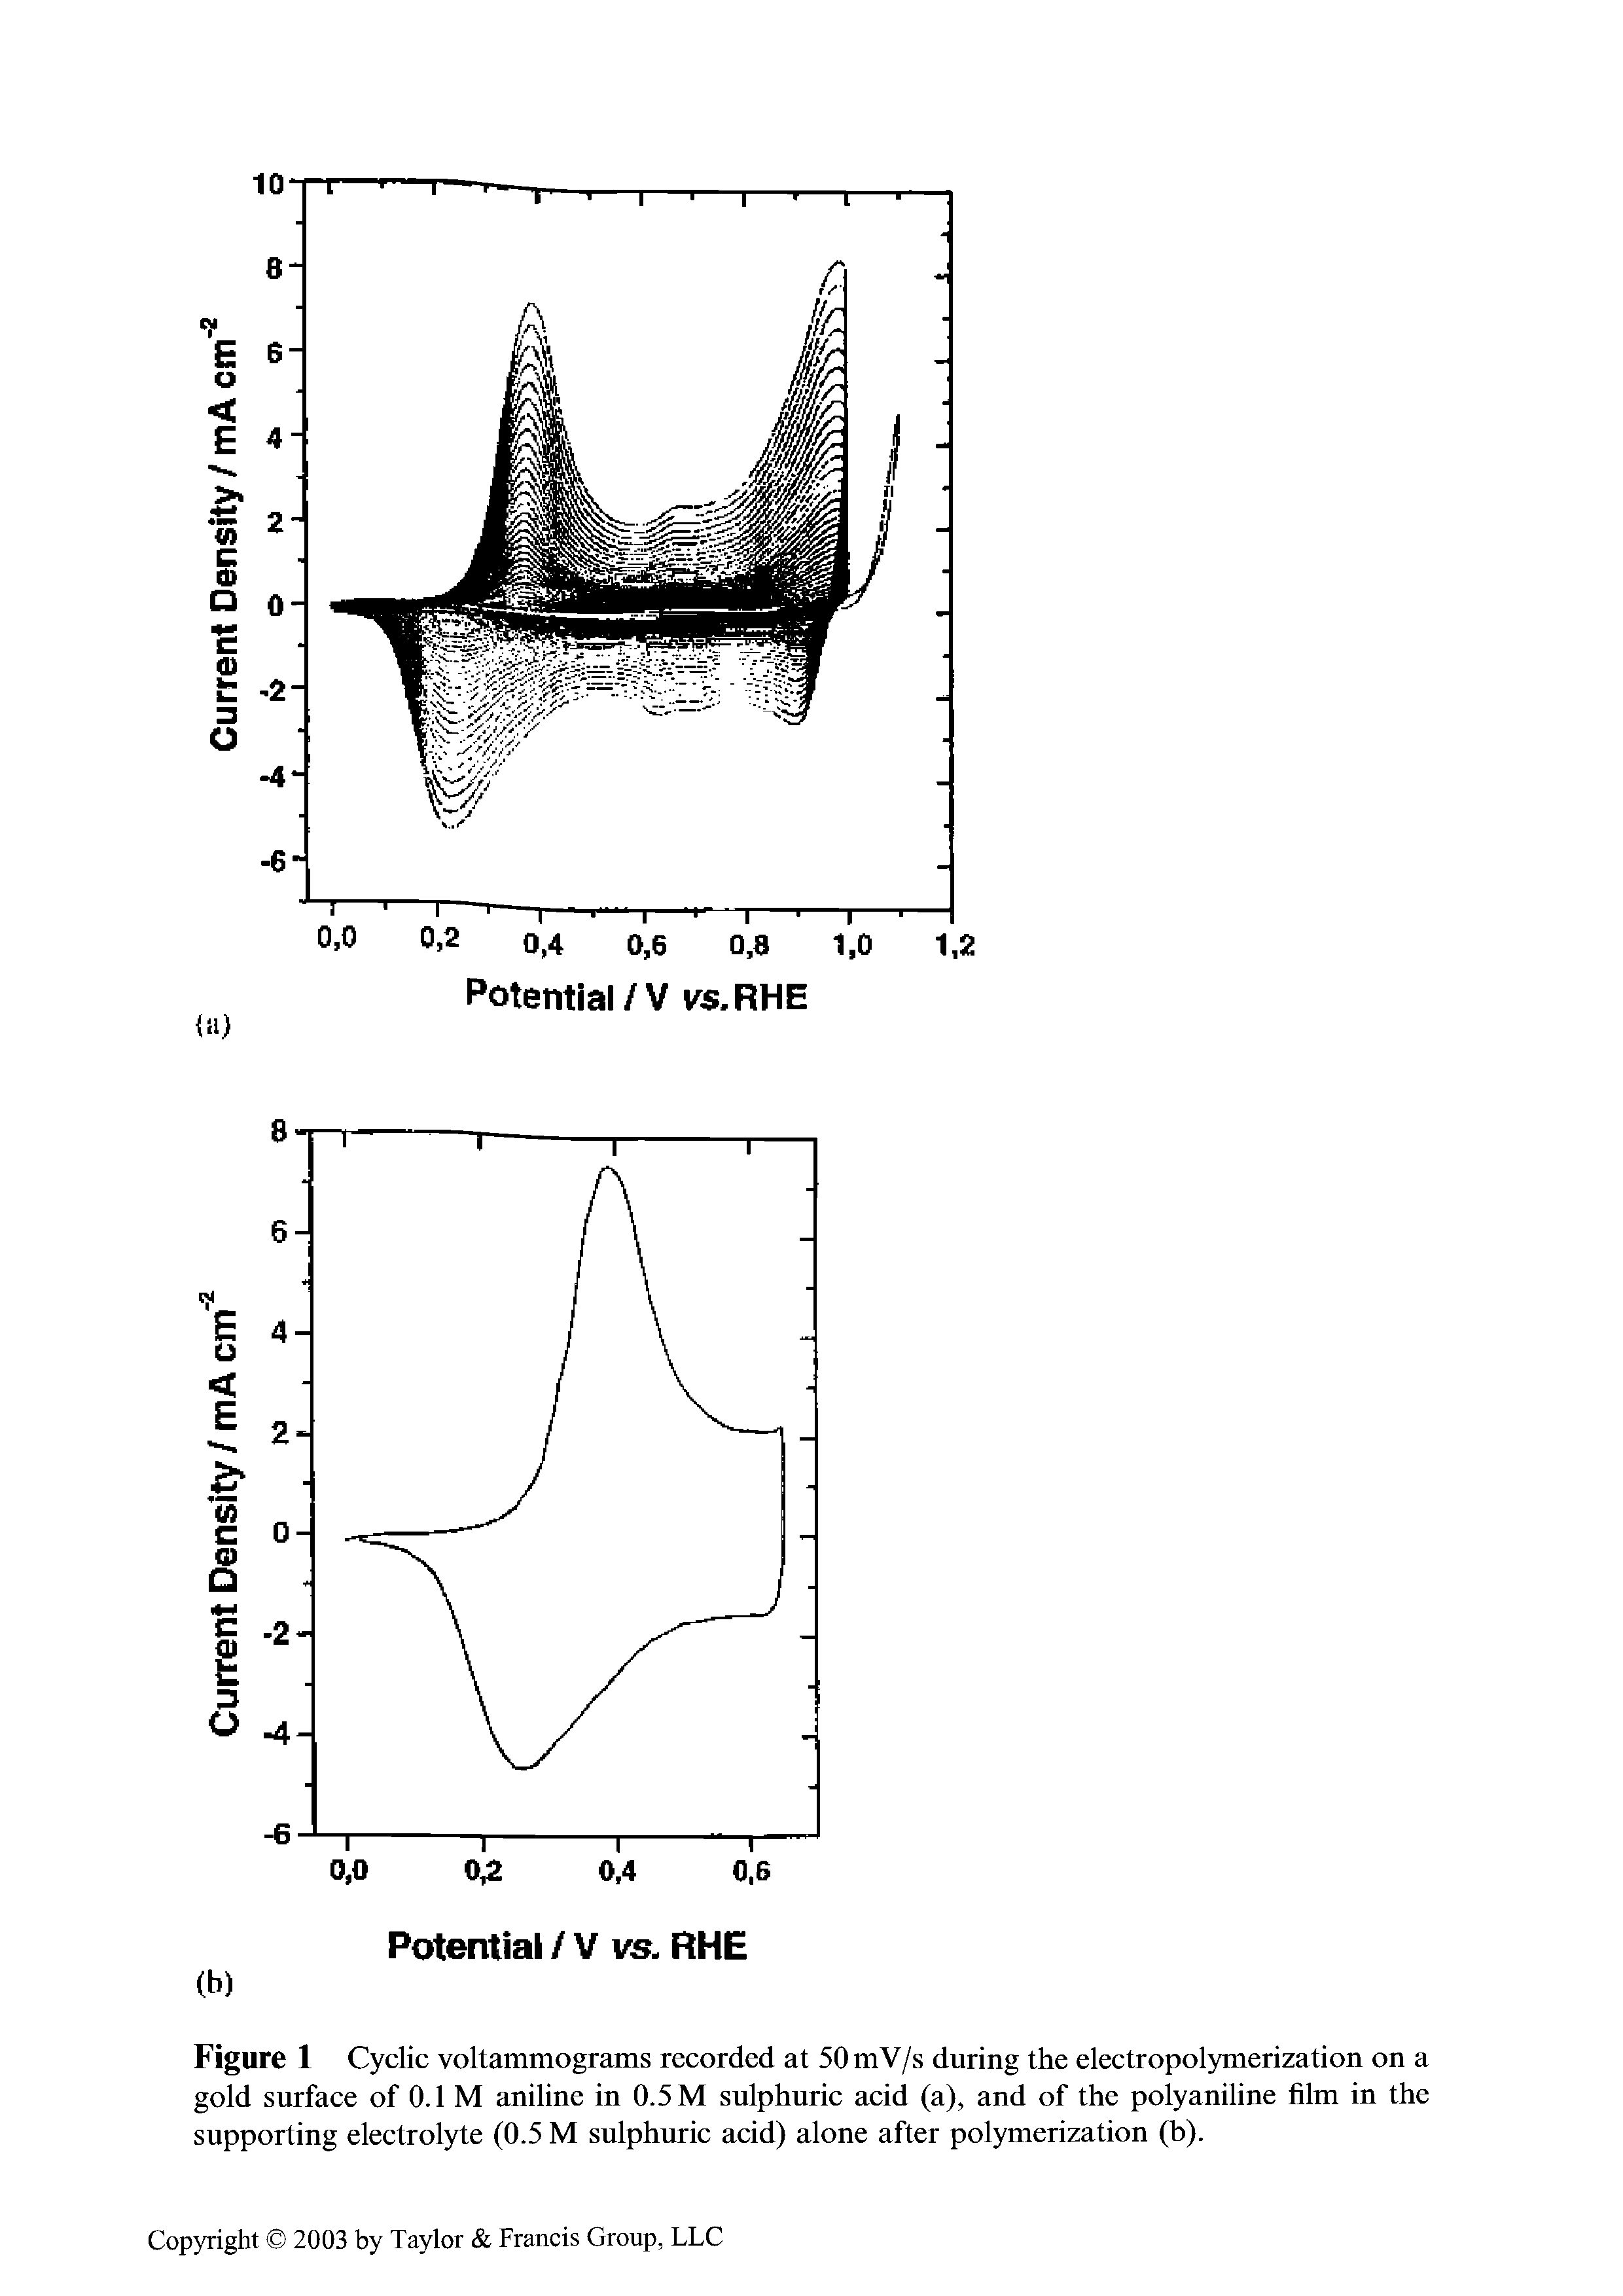 Figure 1 Cyclic voltammograms recorded at 50mV/s during the electropolymerization on a gold surface of 0.1 M aniline in 0.5 M sulphuric acid (a), and of the polyaniline film in the supporting electrolyte (0.5 M sulphuric acid) alone after polymerization (b).